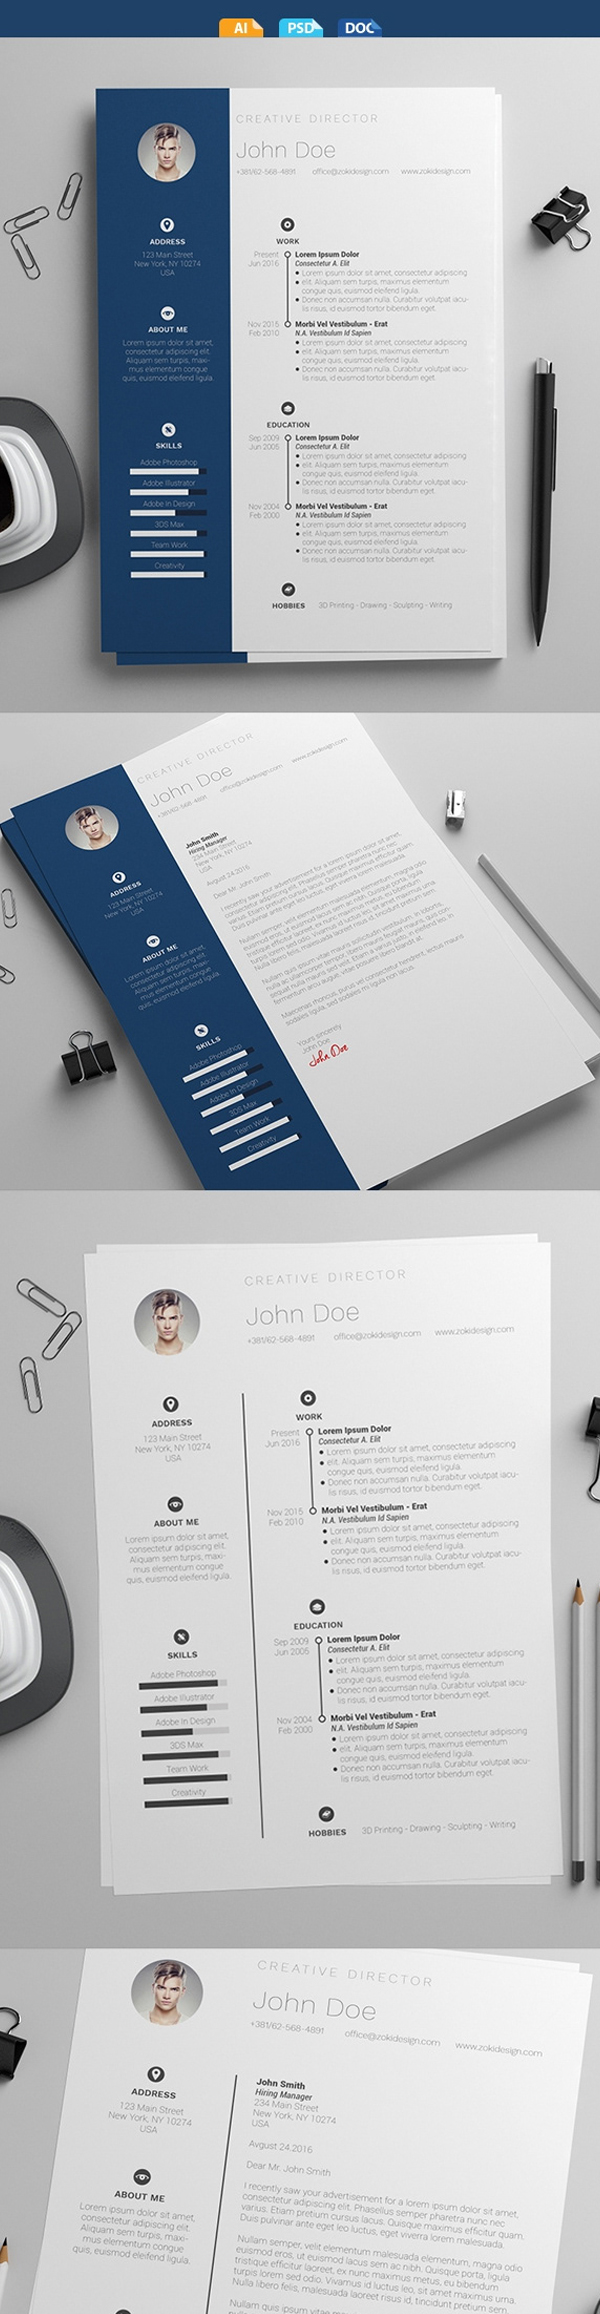 25 Fresh Free Professional Resume Templates - 5